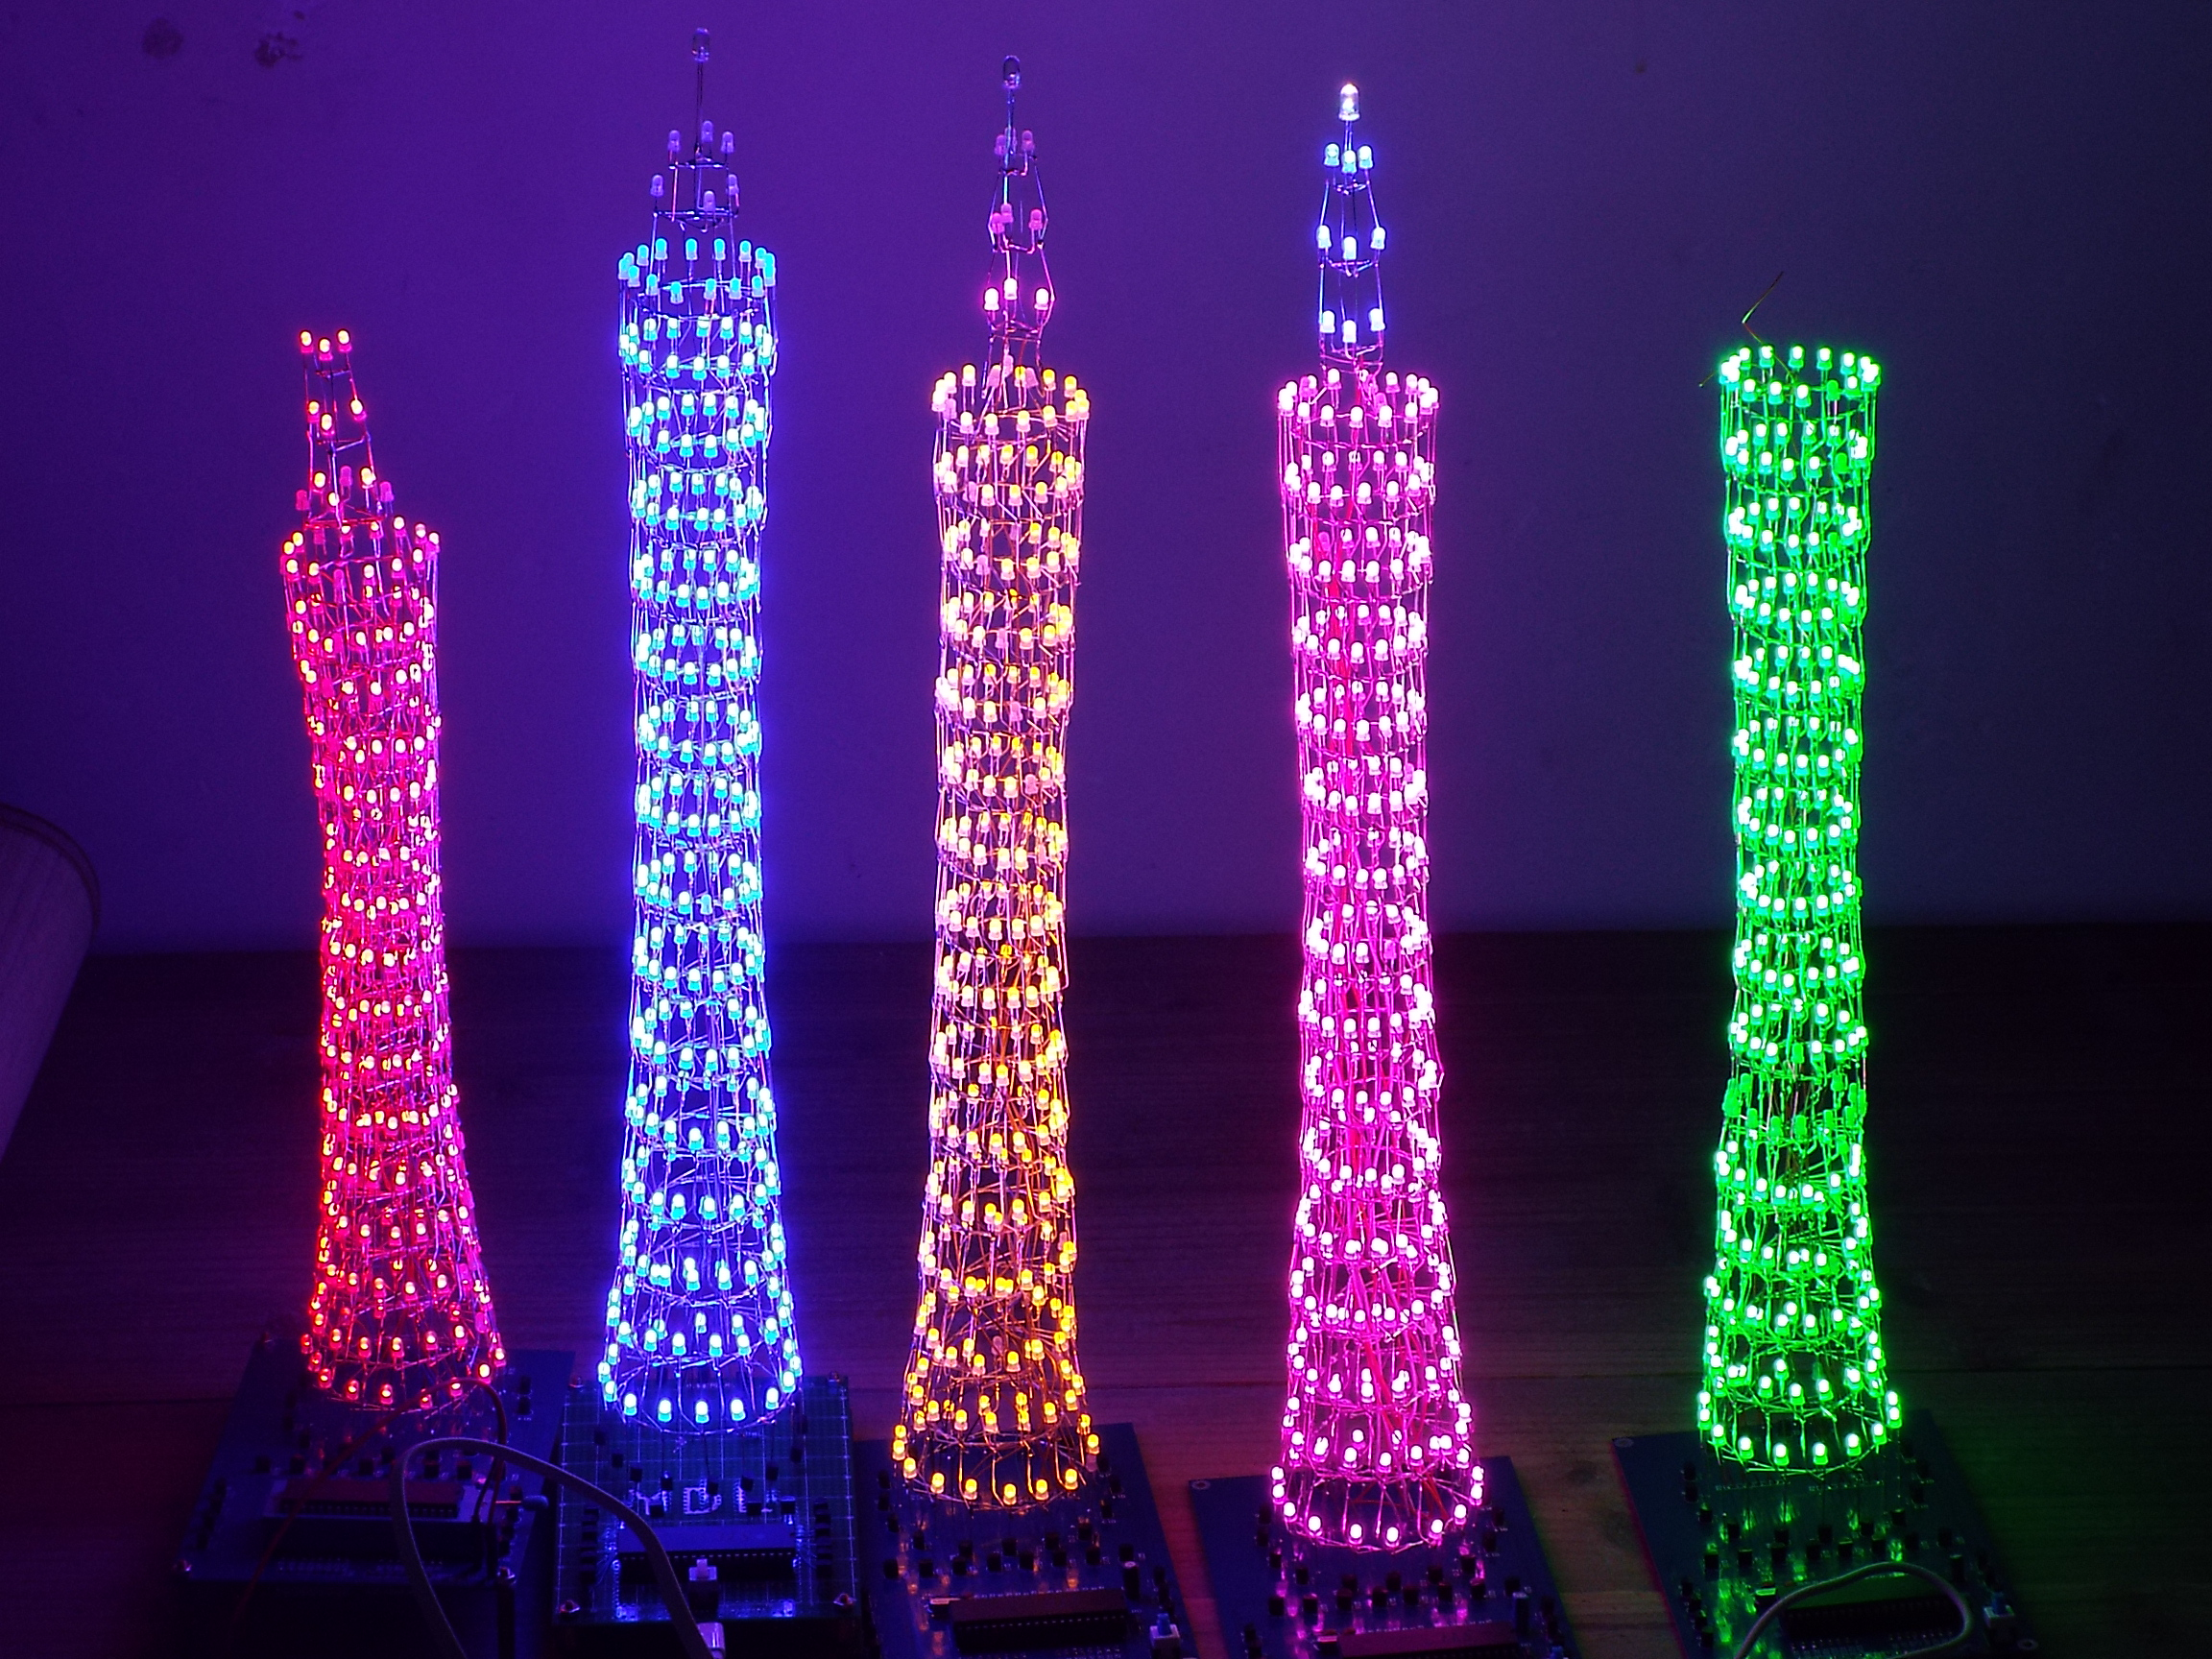 7 DIY color light cube suite DIY Canton Tower kit graduate design 51 single chip creative electronic data delivery program light cube suite tower in paris eiffel tower led diy music spectrum electronic parts